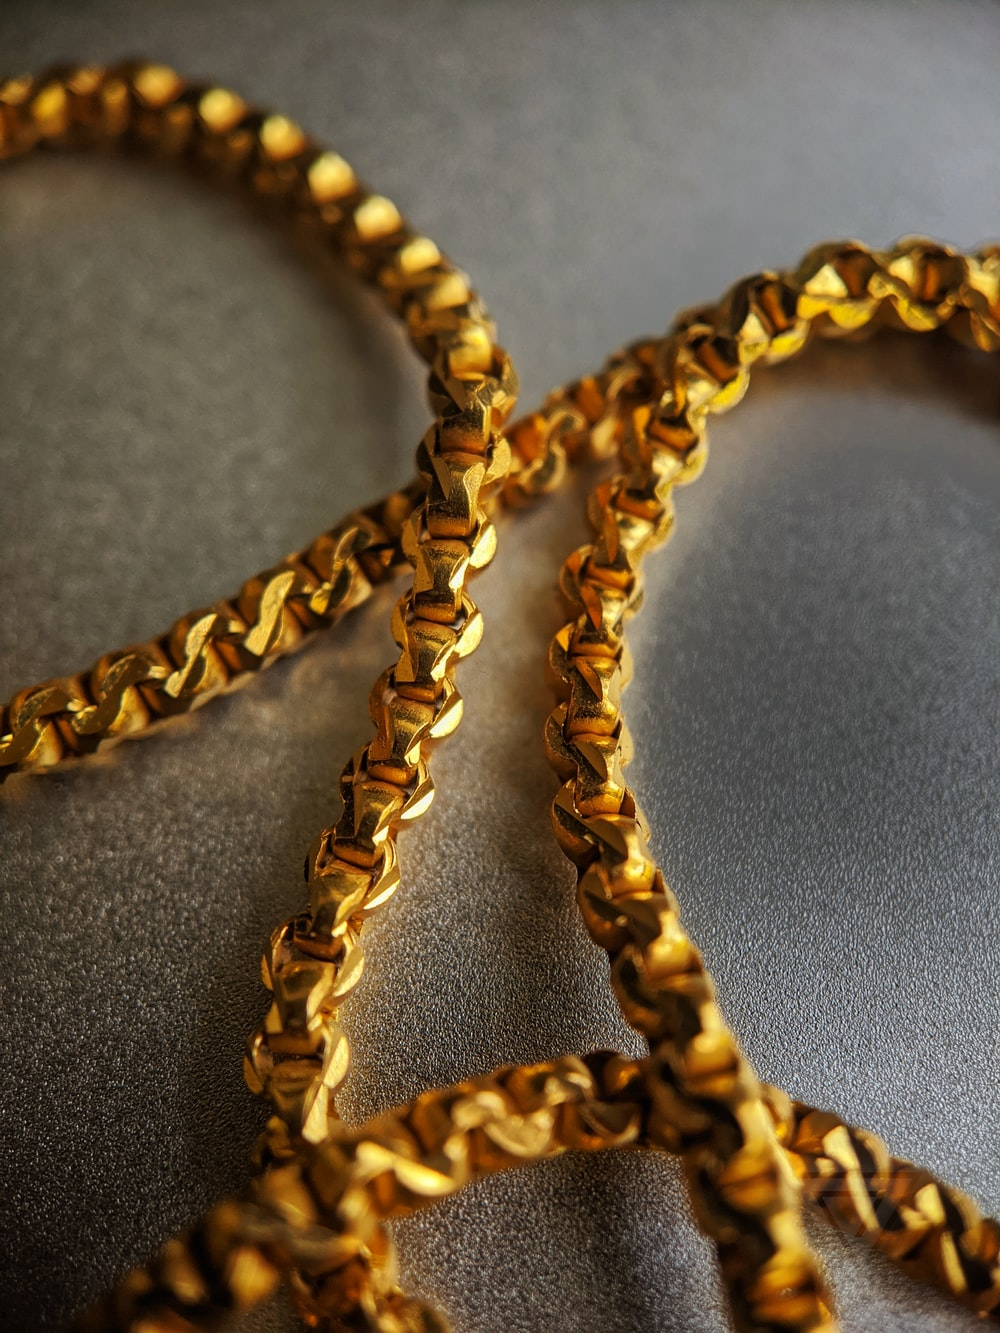 gold chain necklace on gray textile